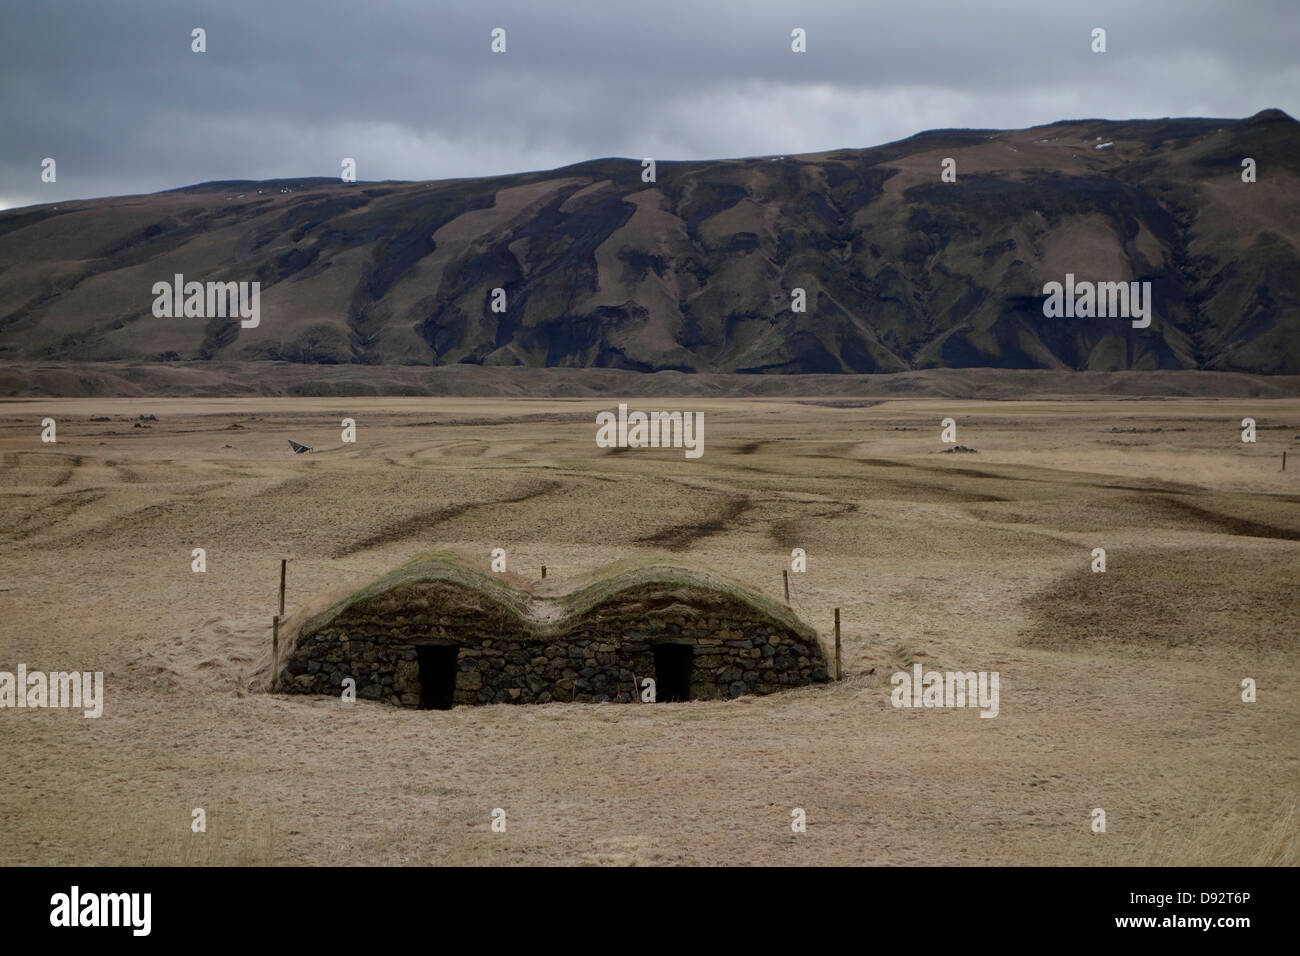 Bunkers in the middle of a mowed field - Stock Image